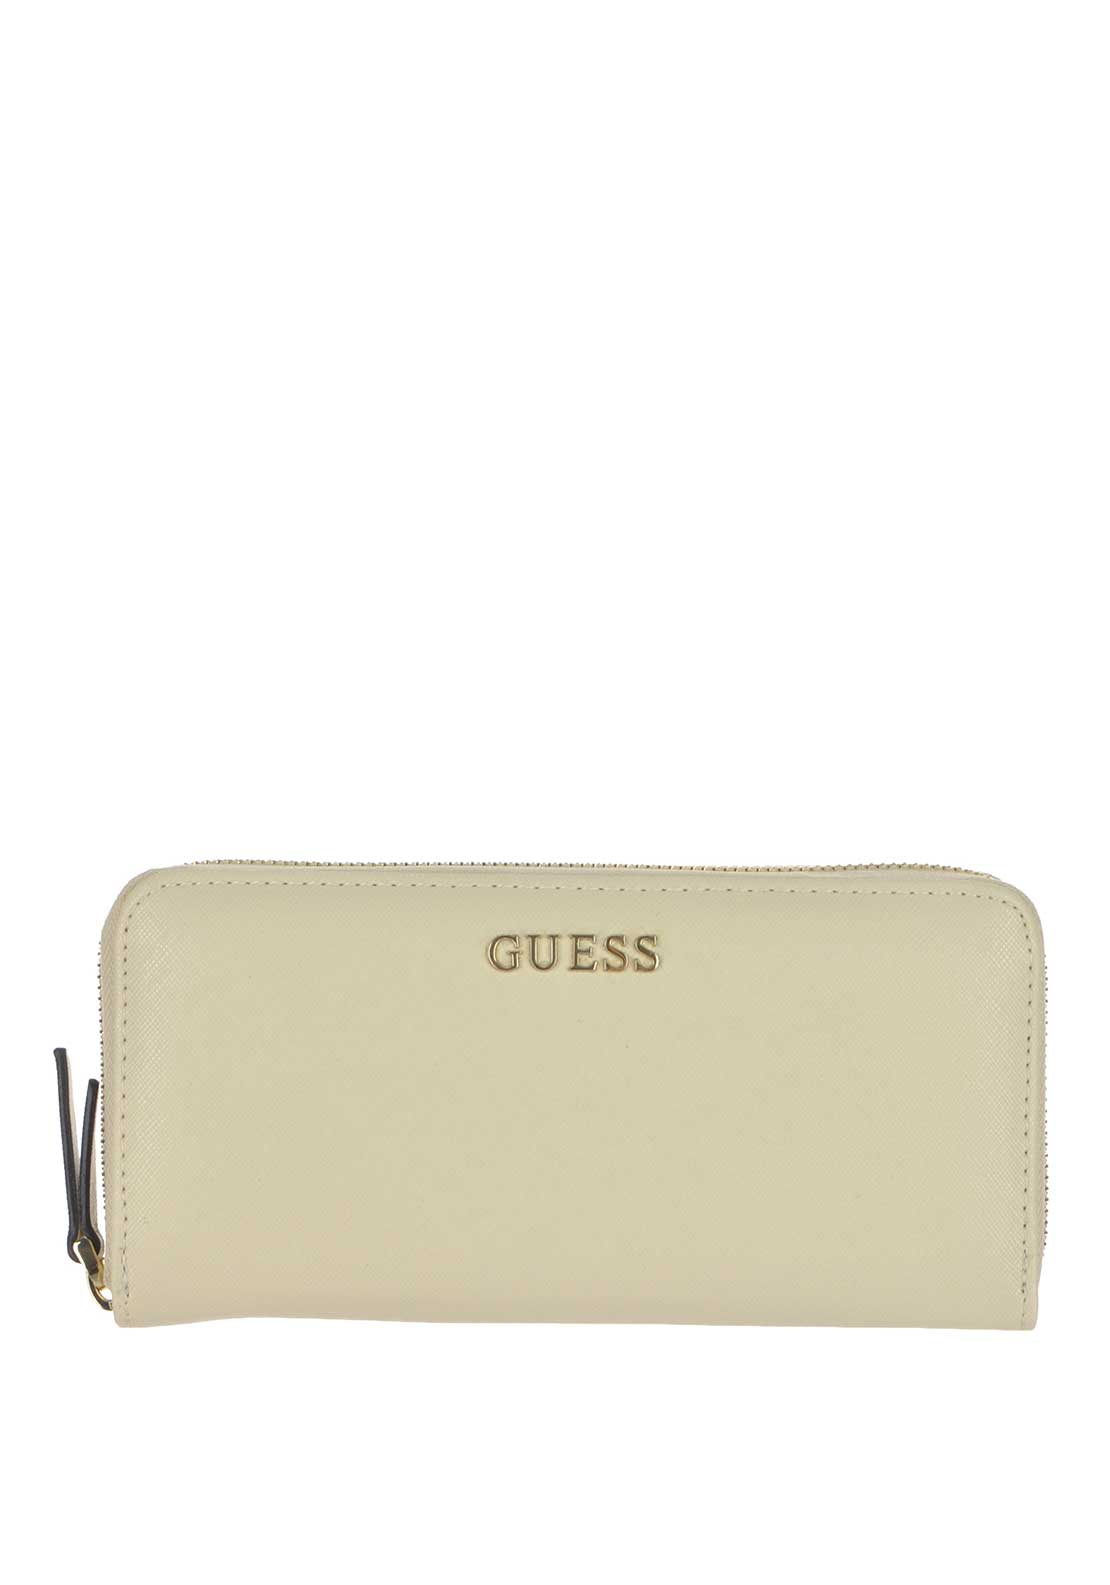 Guess Sissi Large Zip Around Wallet, White